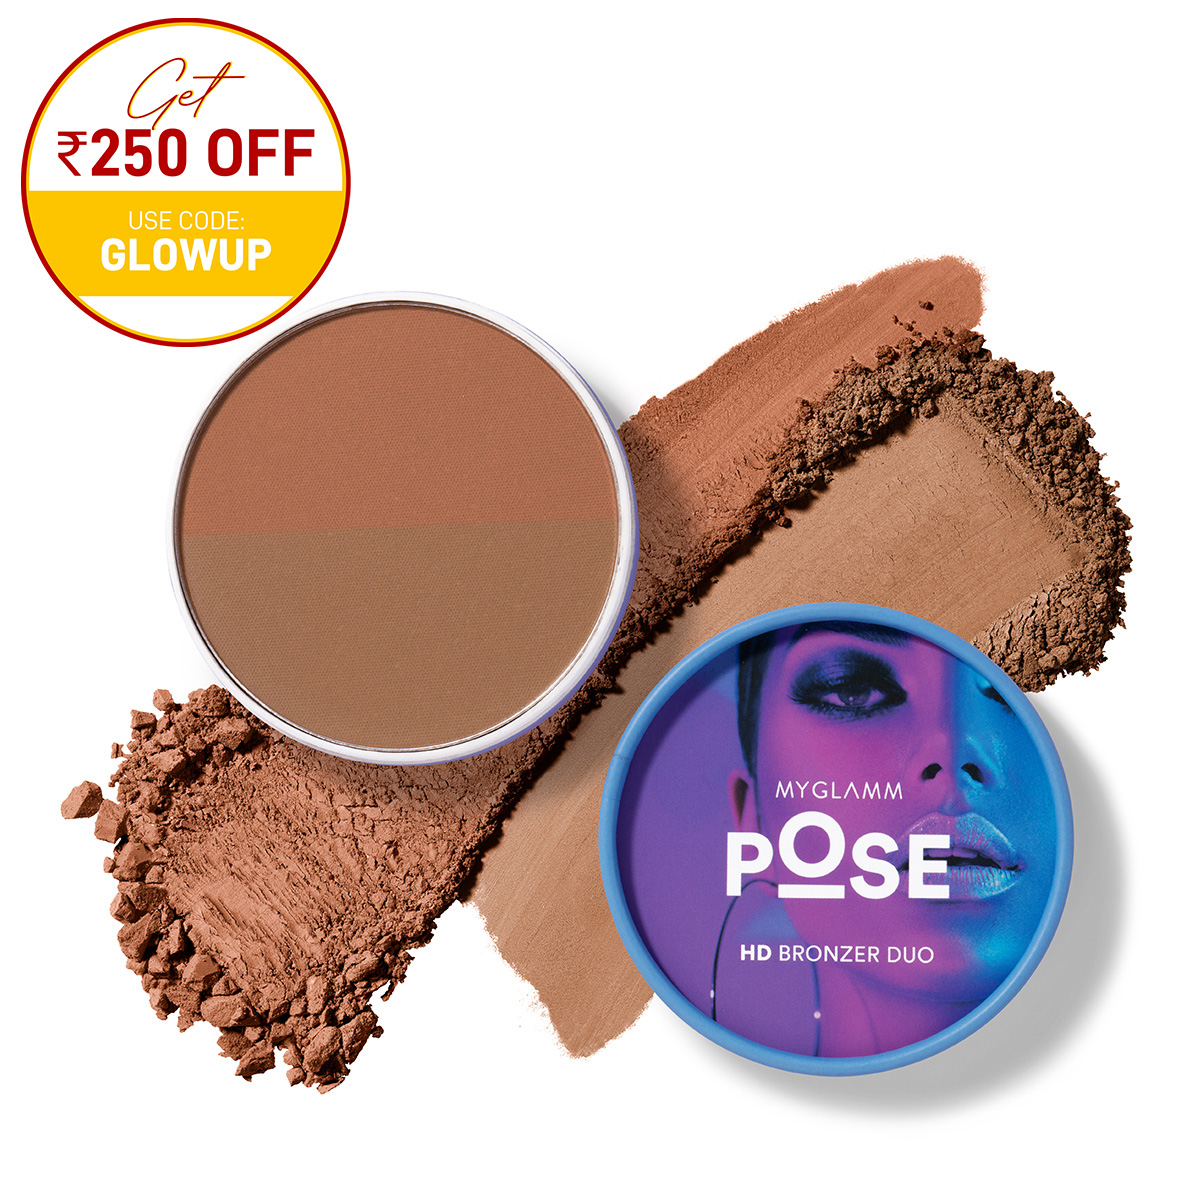 pose-hd-bronzer-duo-8